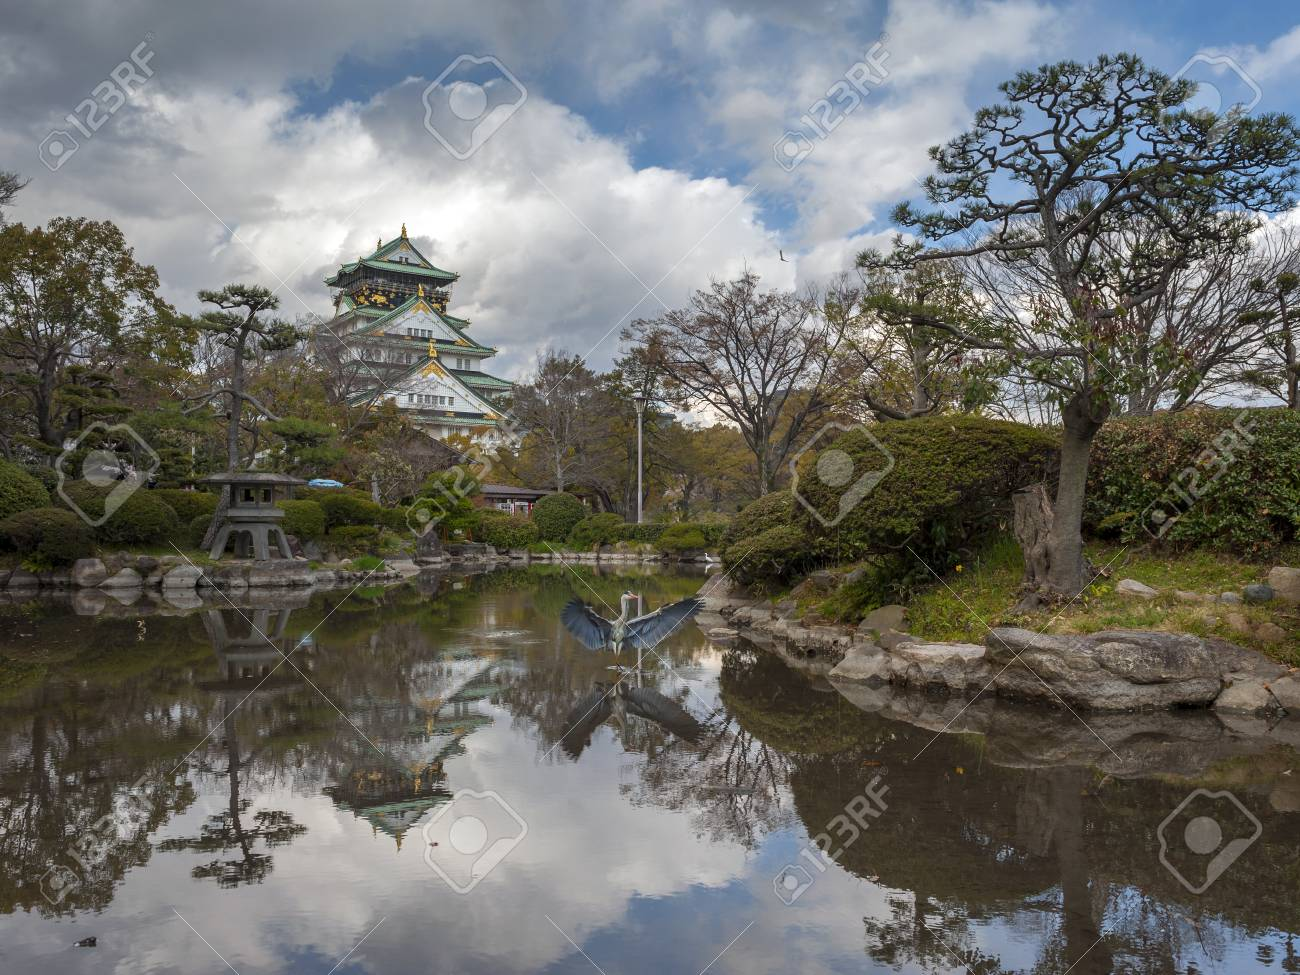 Pool Water In Garden Of Osaka Castle Stock Photo, Picture And ...